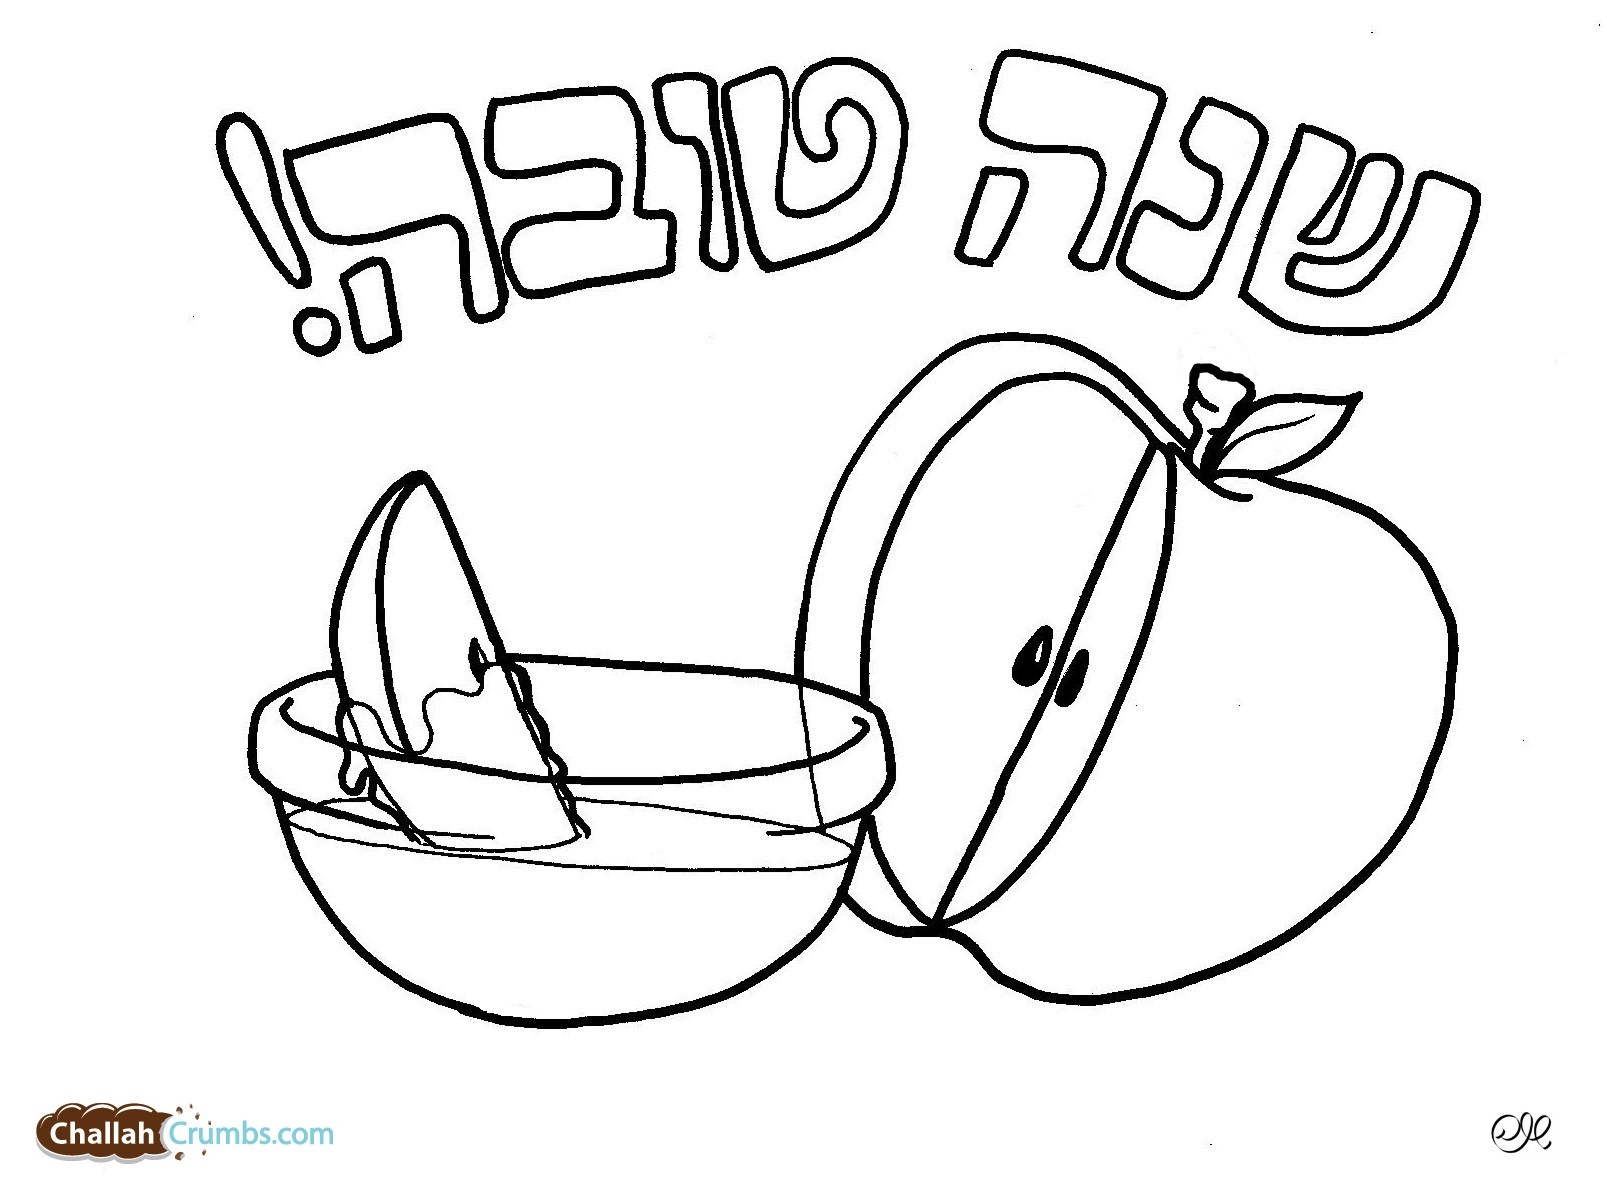 coloring pages rosh hashanah free printable color your card rosh hashanah cards create coloring hashanah rosh pages